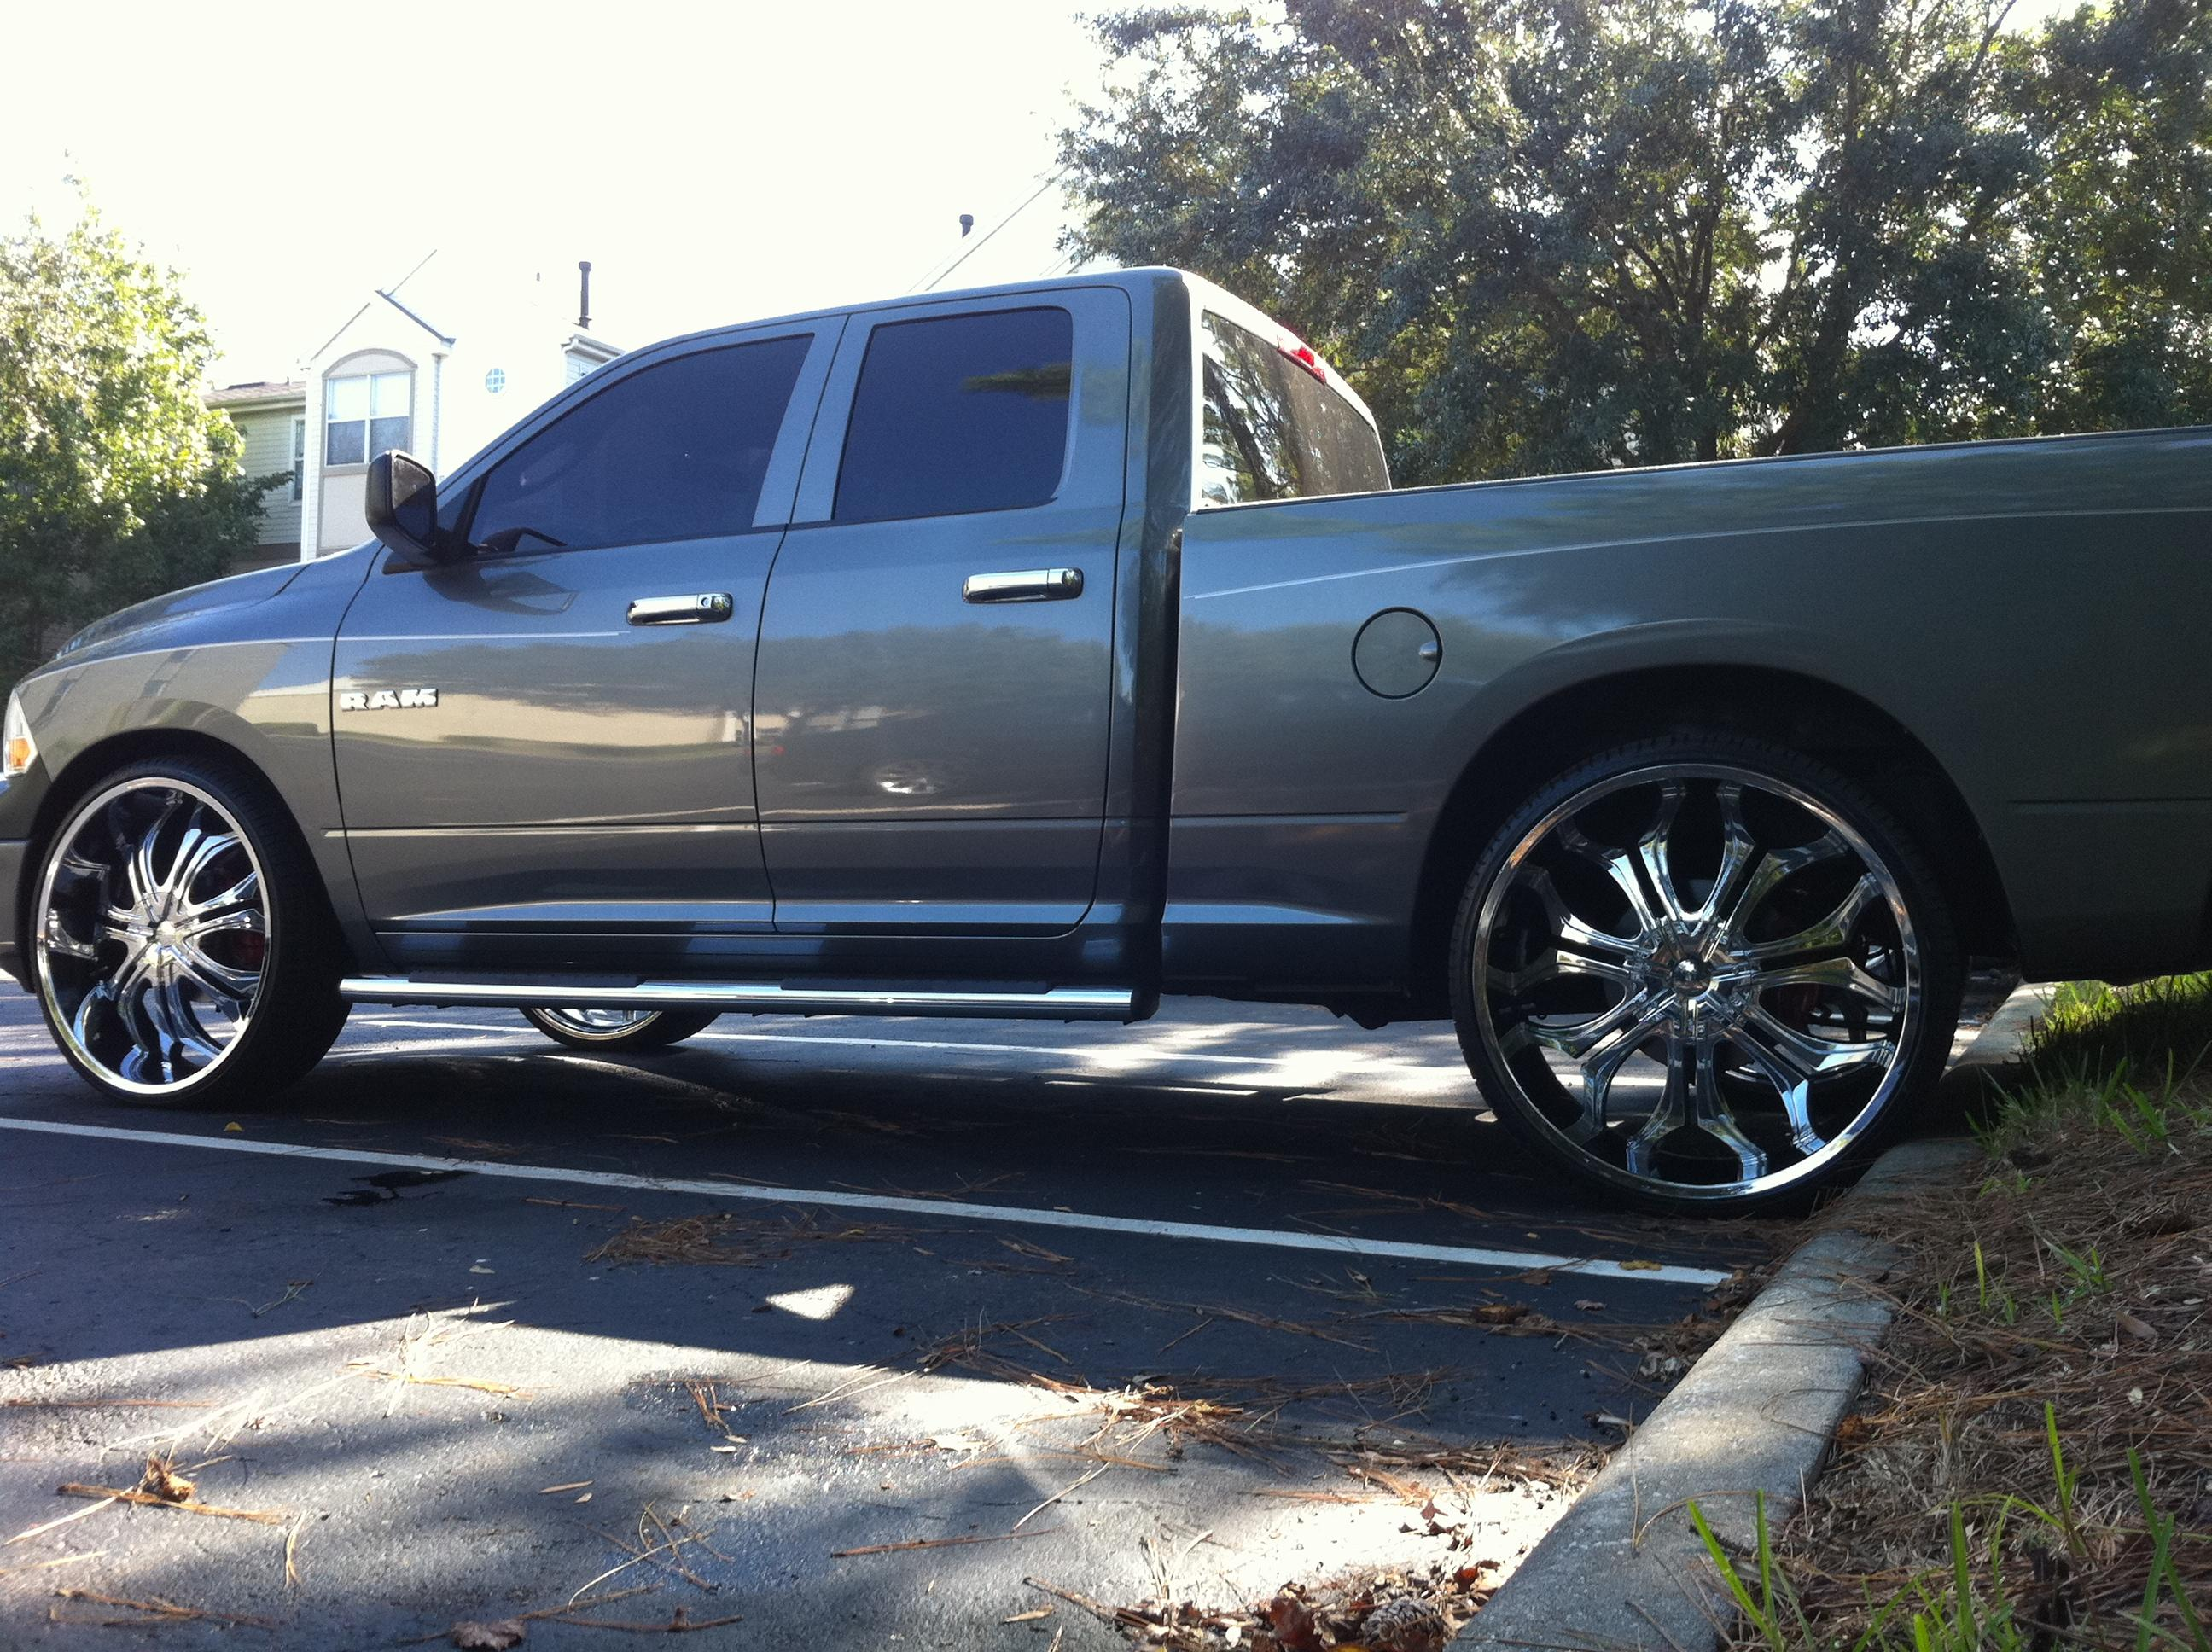 20 Dodge Ram On 28s Pictures And Ideas On Weric